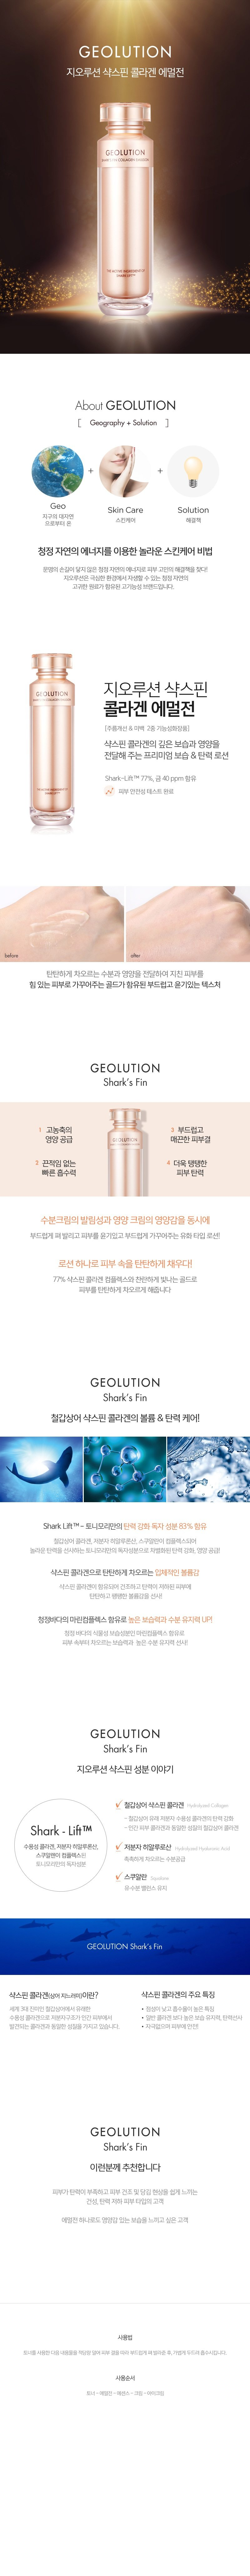 Tony Moly Geolution Shark's Fin Collagen Emulsion korean cosmetic skincare product online shop malaysia italy germany1